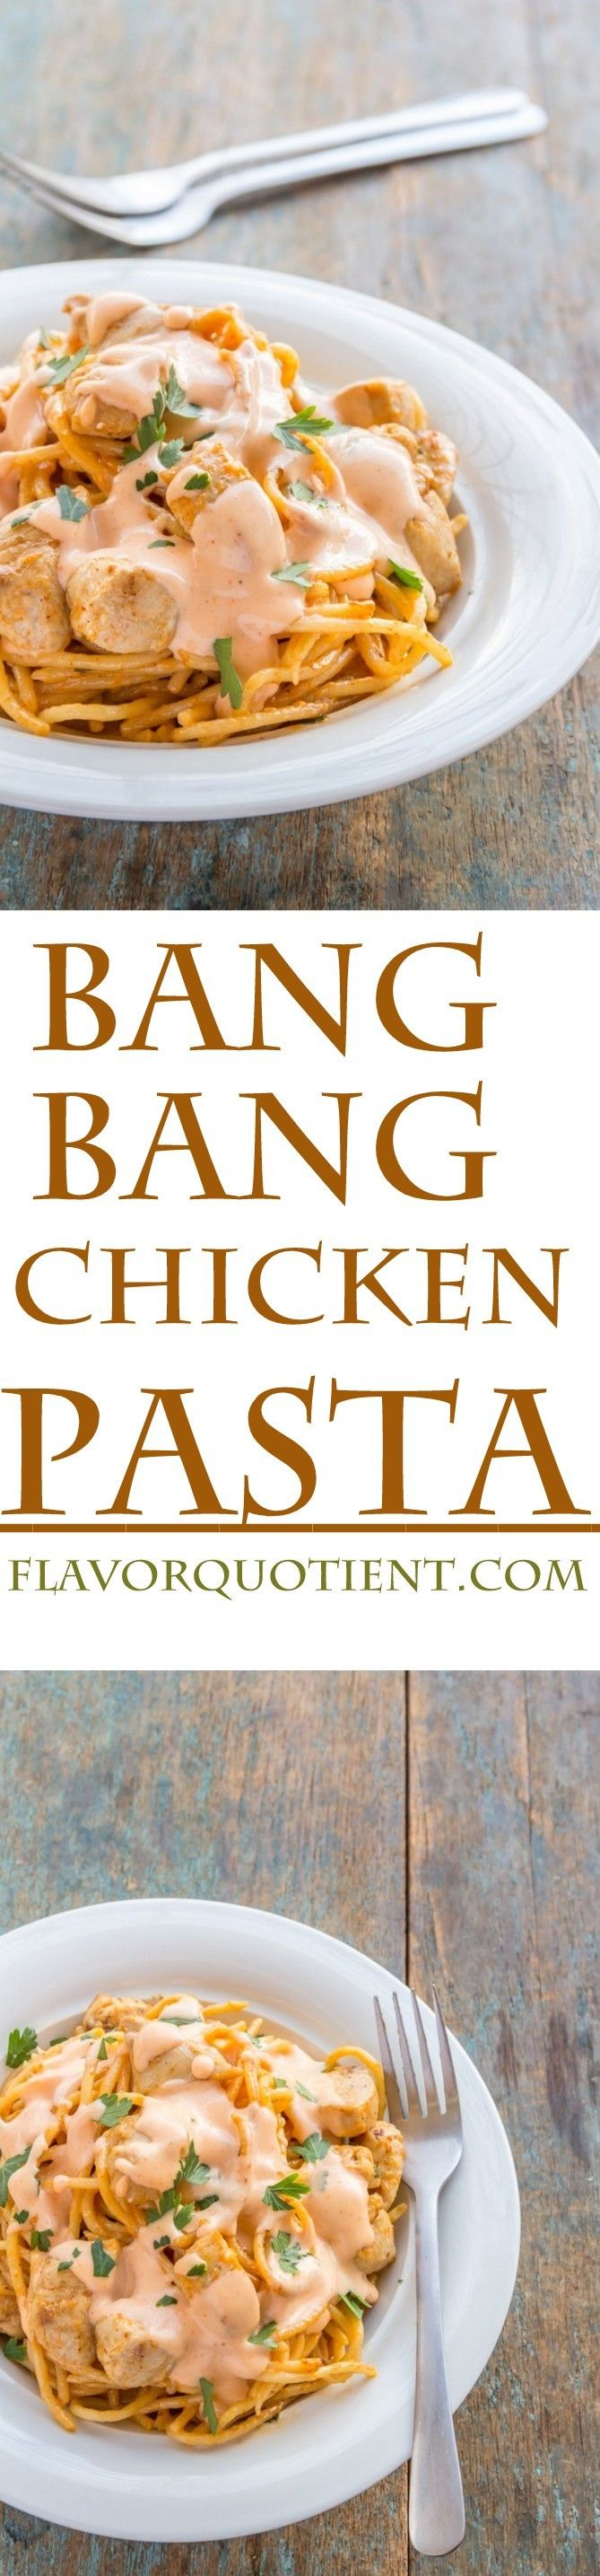 This bang bang chicken pasta is childishly easy to make but substantially high on taste! The addictive bang bang sauce gives an ultimate make-over to the humble chicken pasta. #BangBangChickenPasta #BangBangPasta #ChickenPasta #SPaghetti #PastaRecipes #BangBangSauce #ItalianRecipes #ItalianCuisines #FlavorQuotient